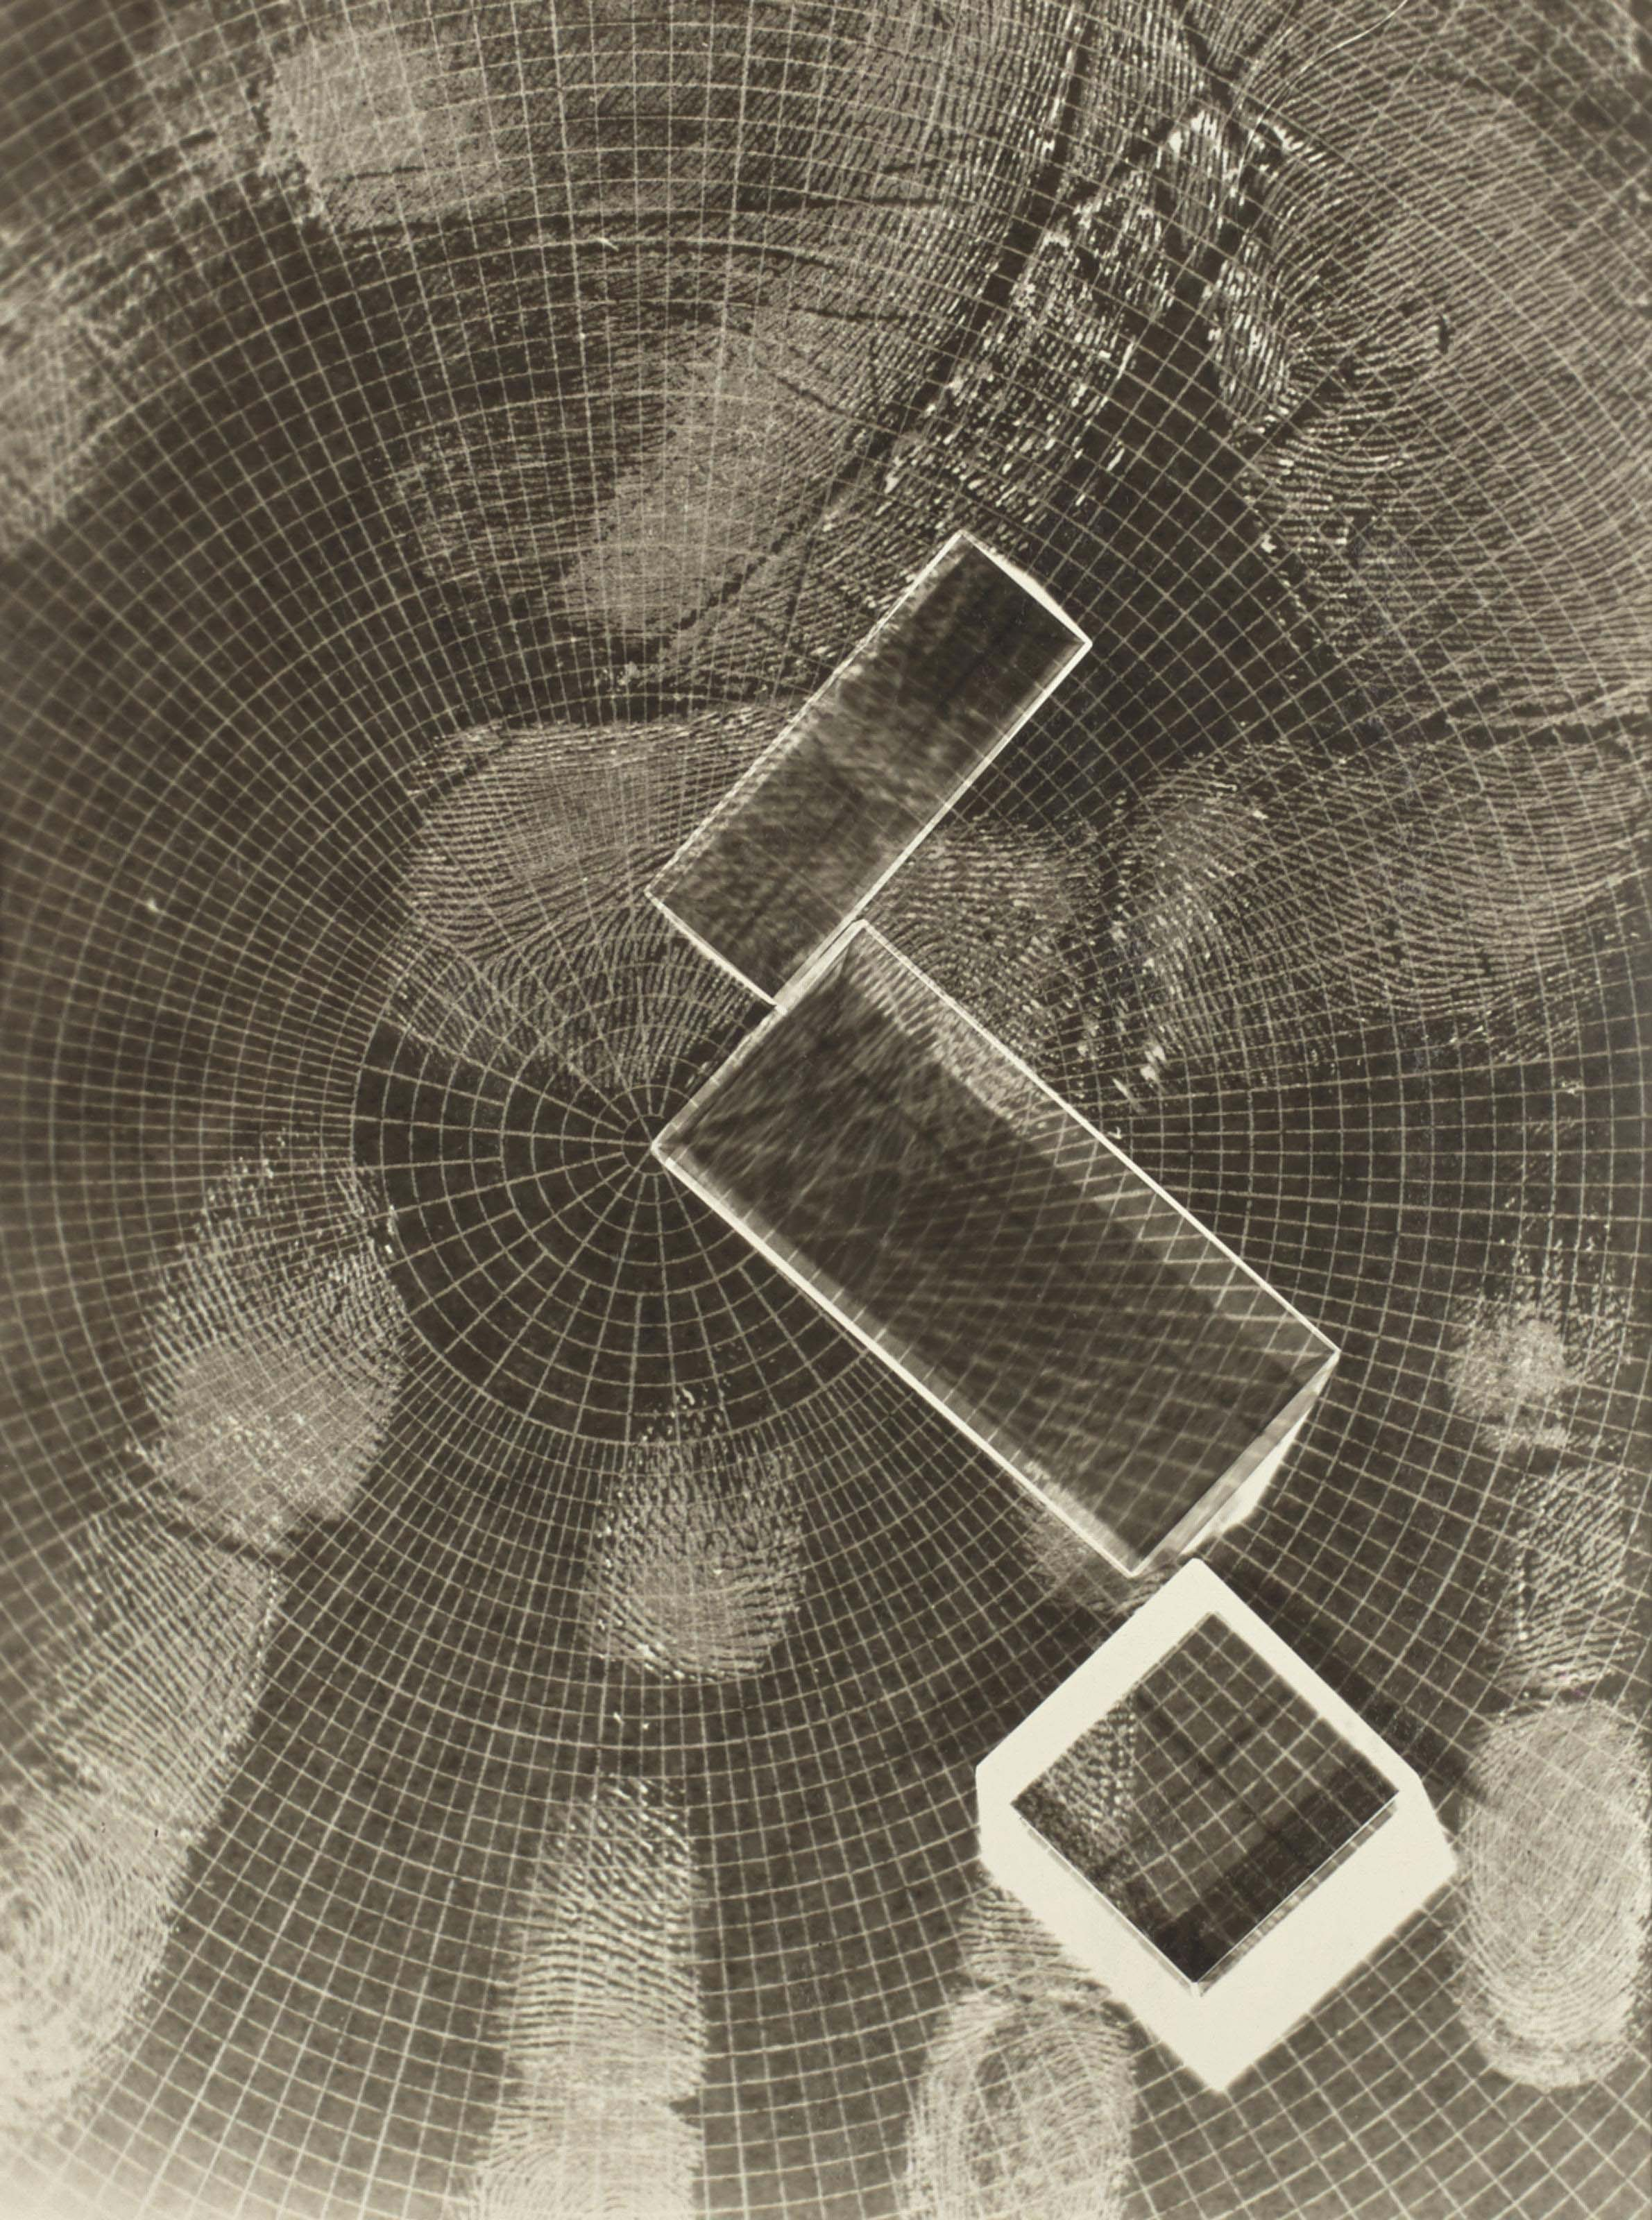 Prisms and Grid, vers 1939